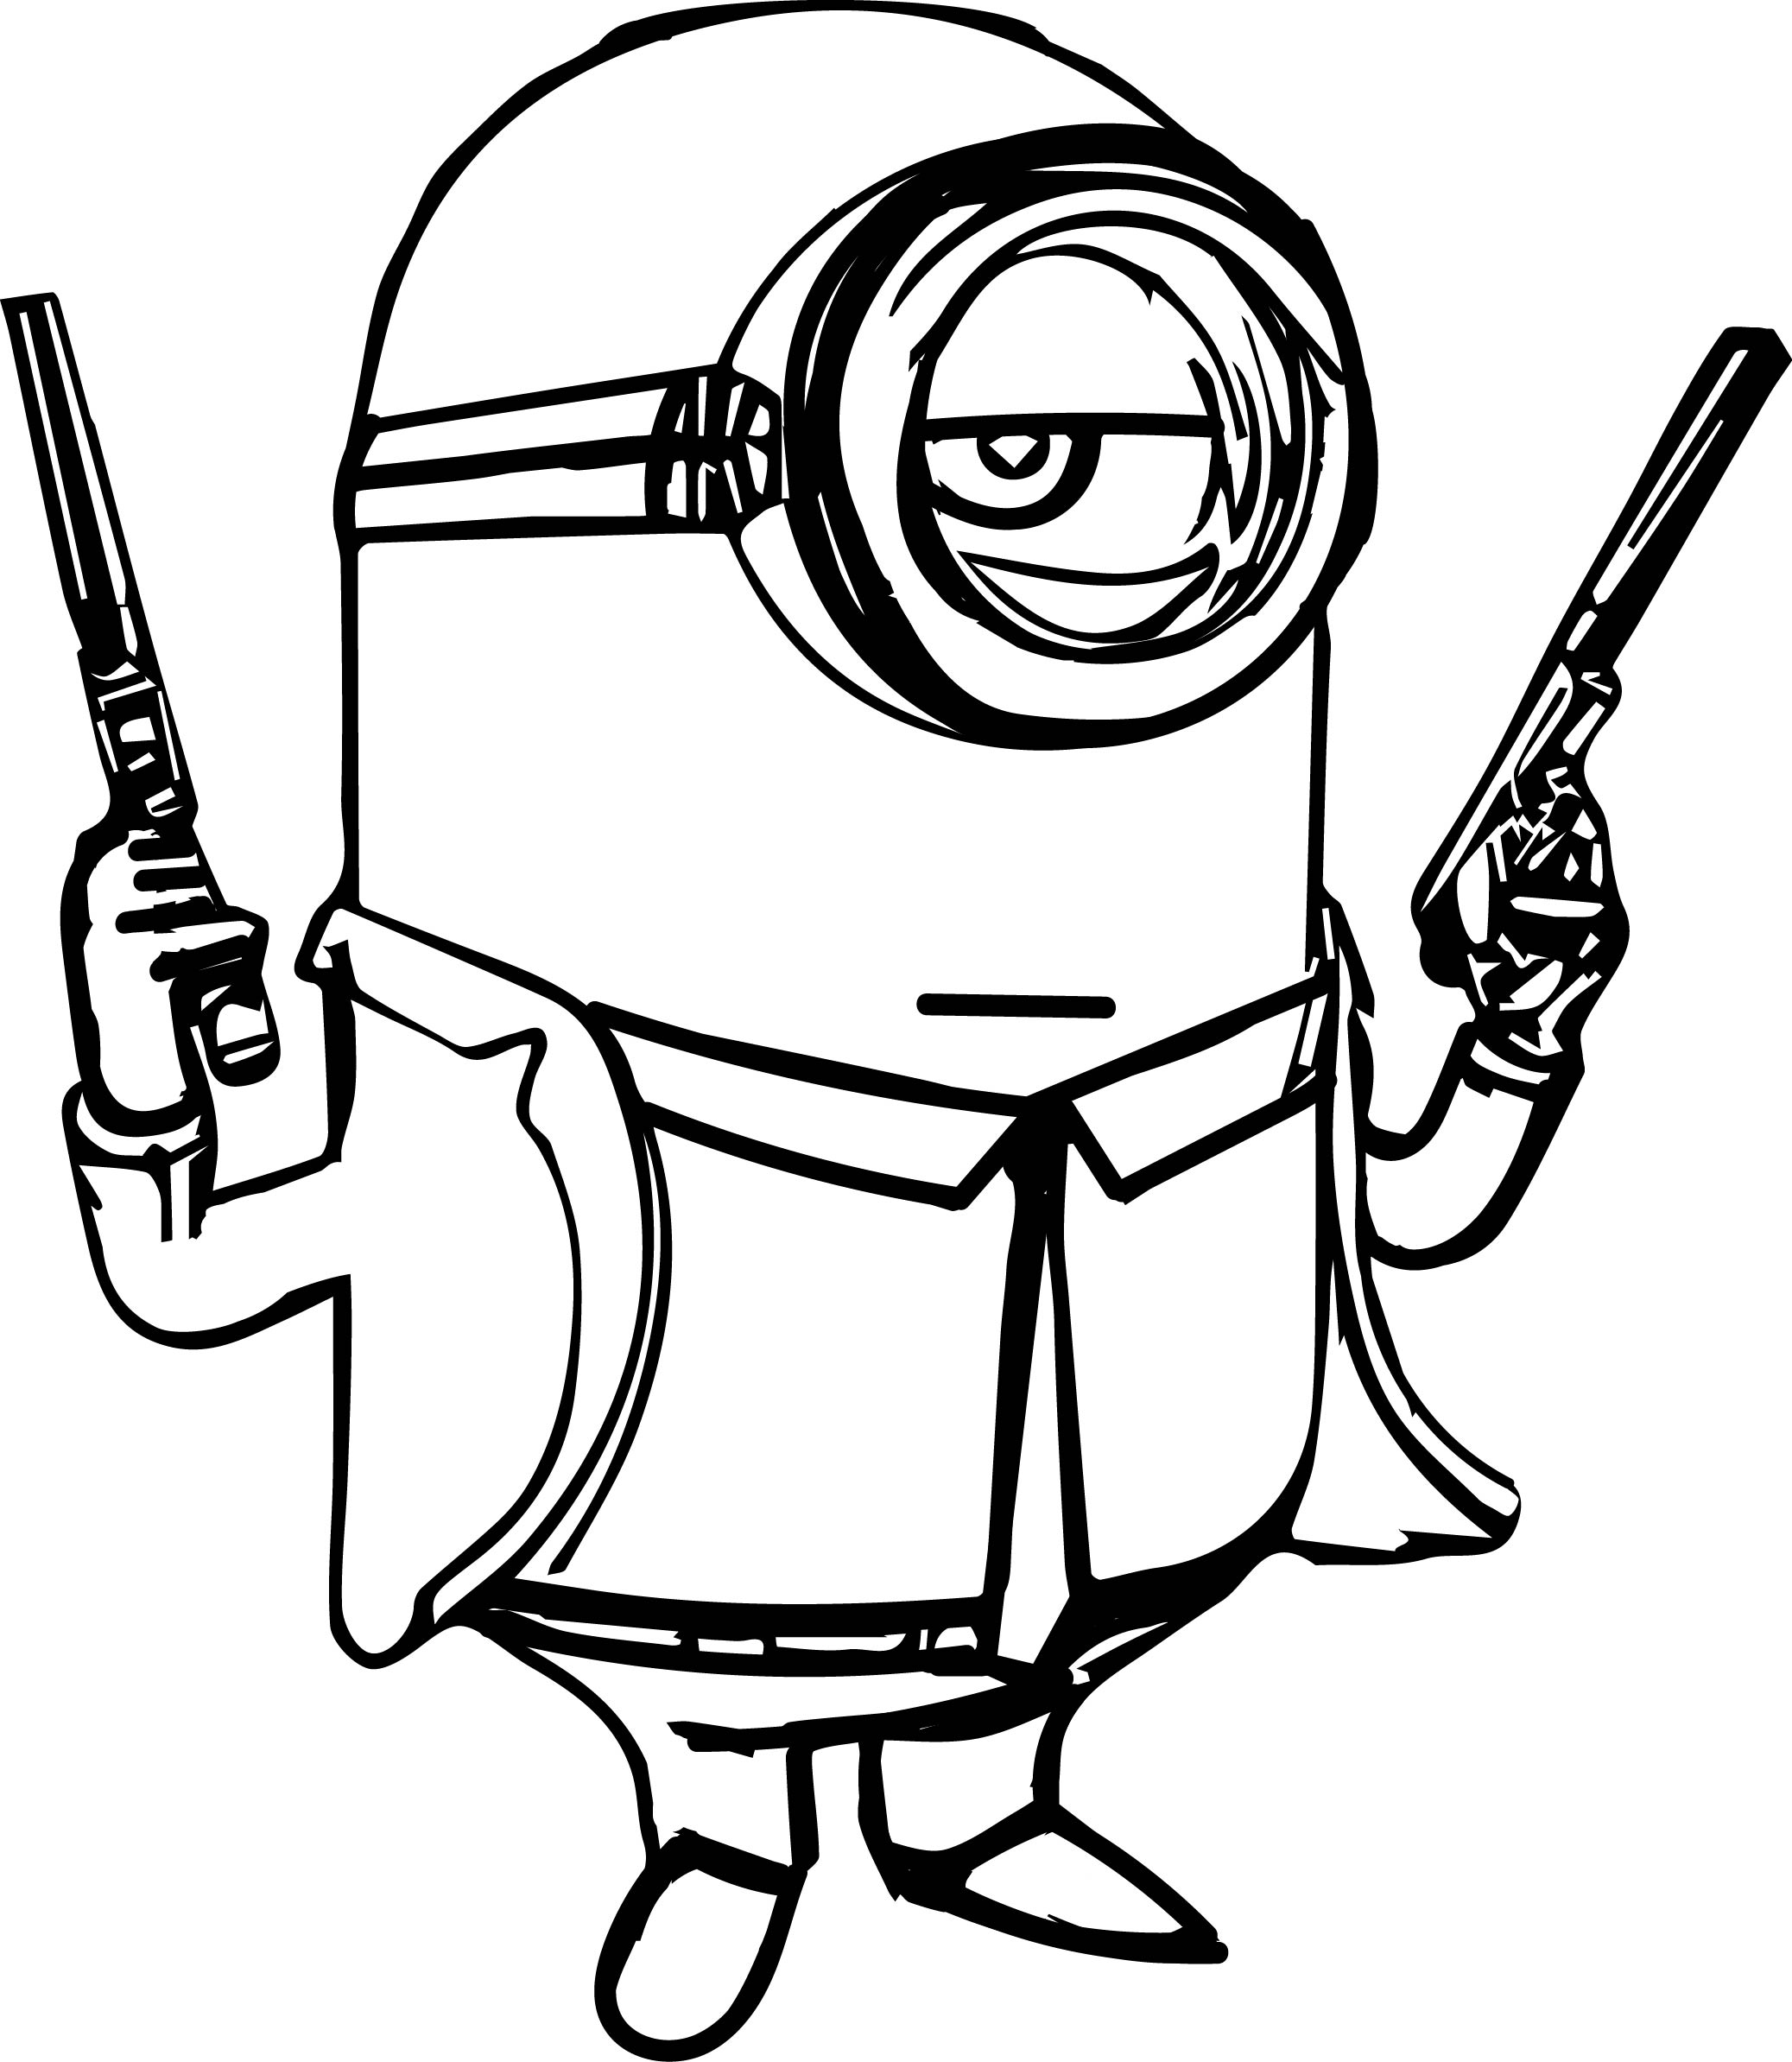 2075x2387 Minion Gun Coloring Page Wecoloringpage In Pages